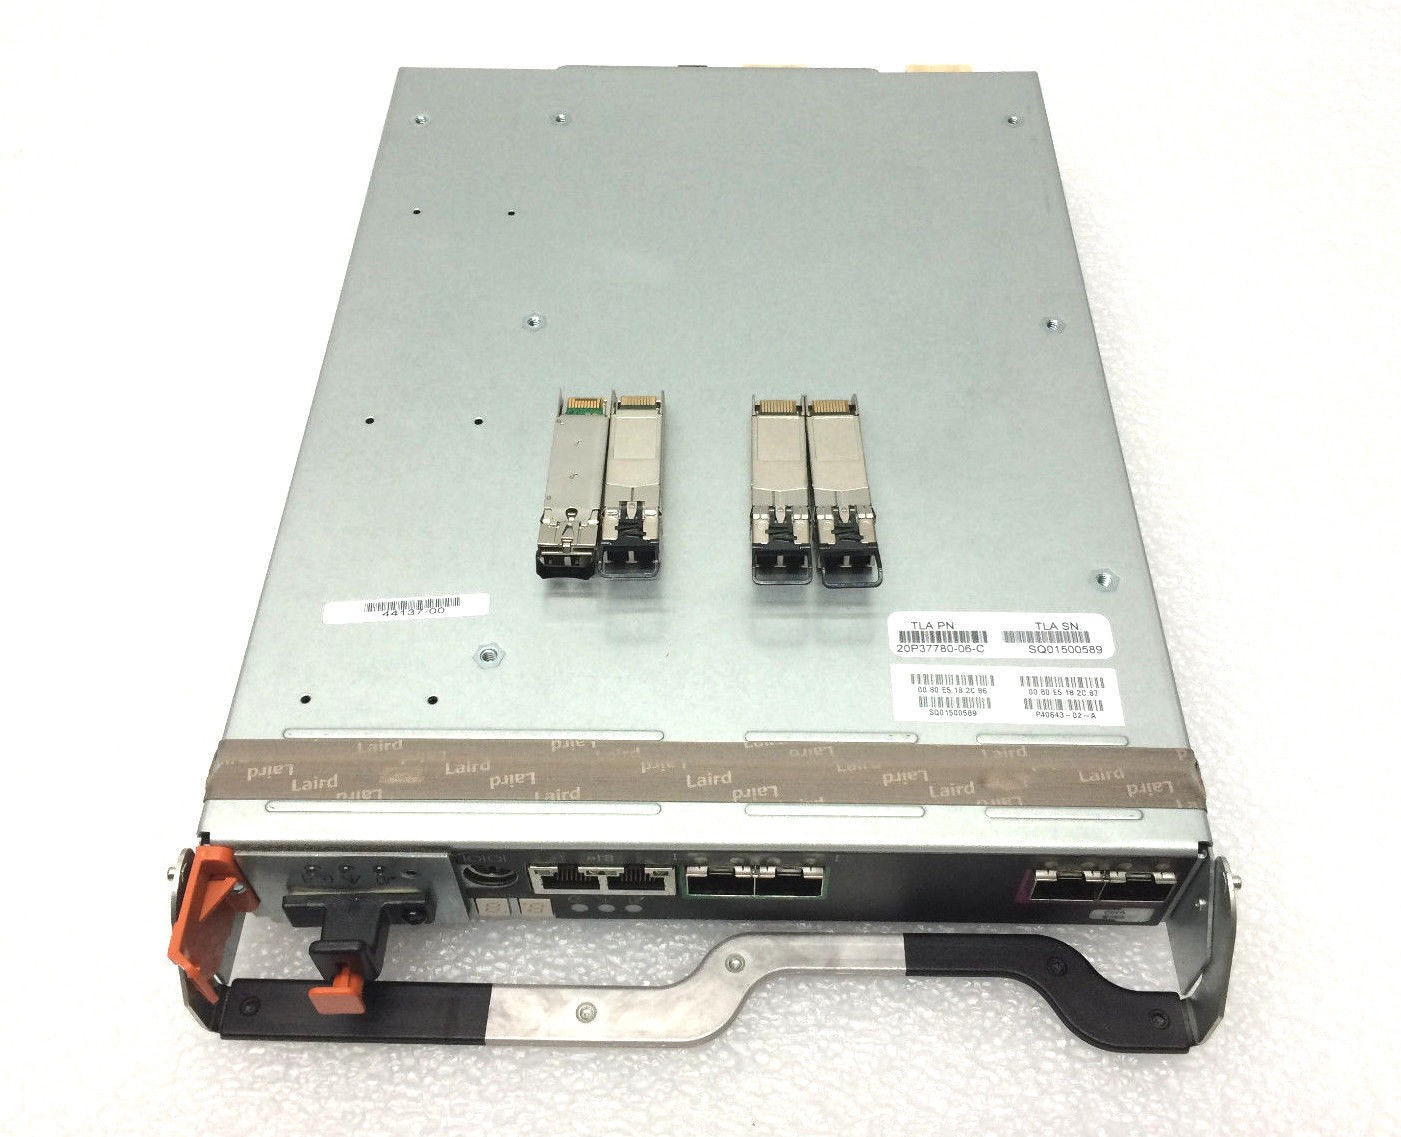 Lsi Dualhost 4 X 8GB SFP Drive Channel Controller (44137-00)